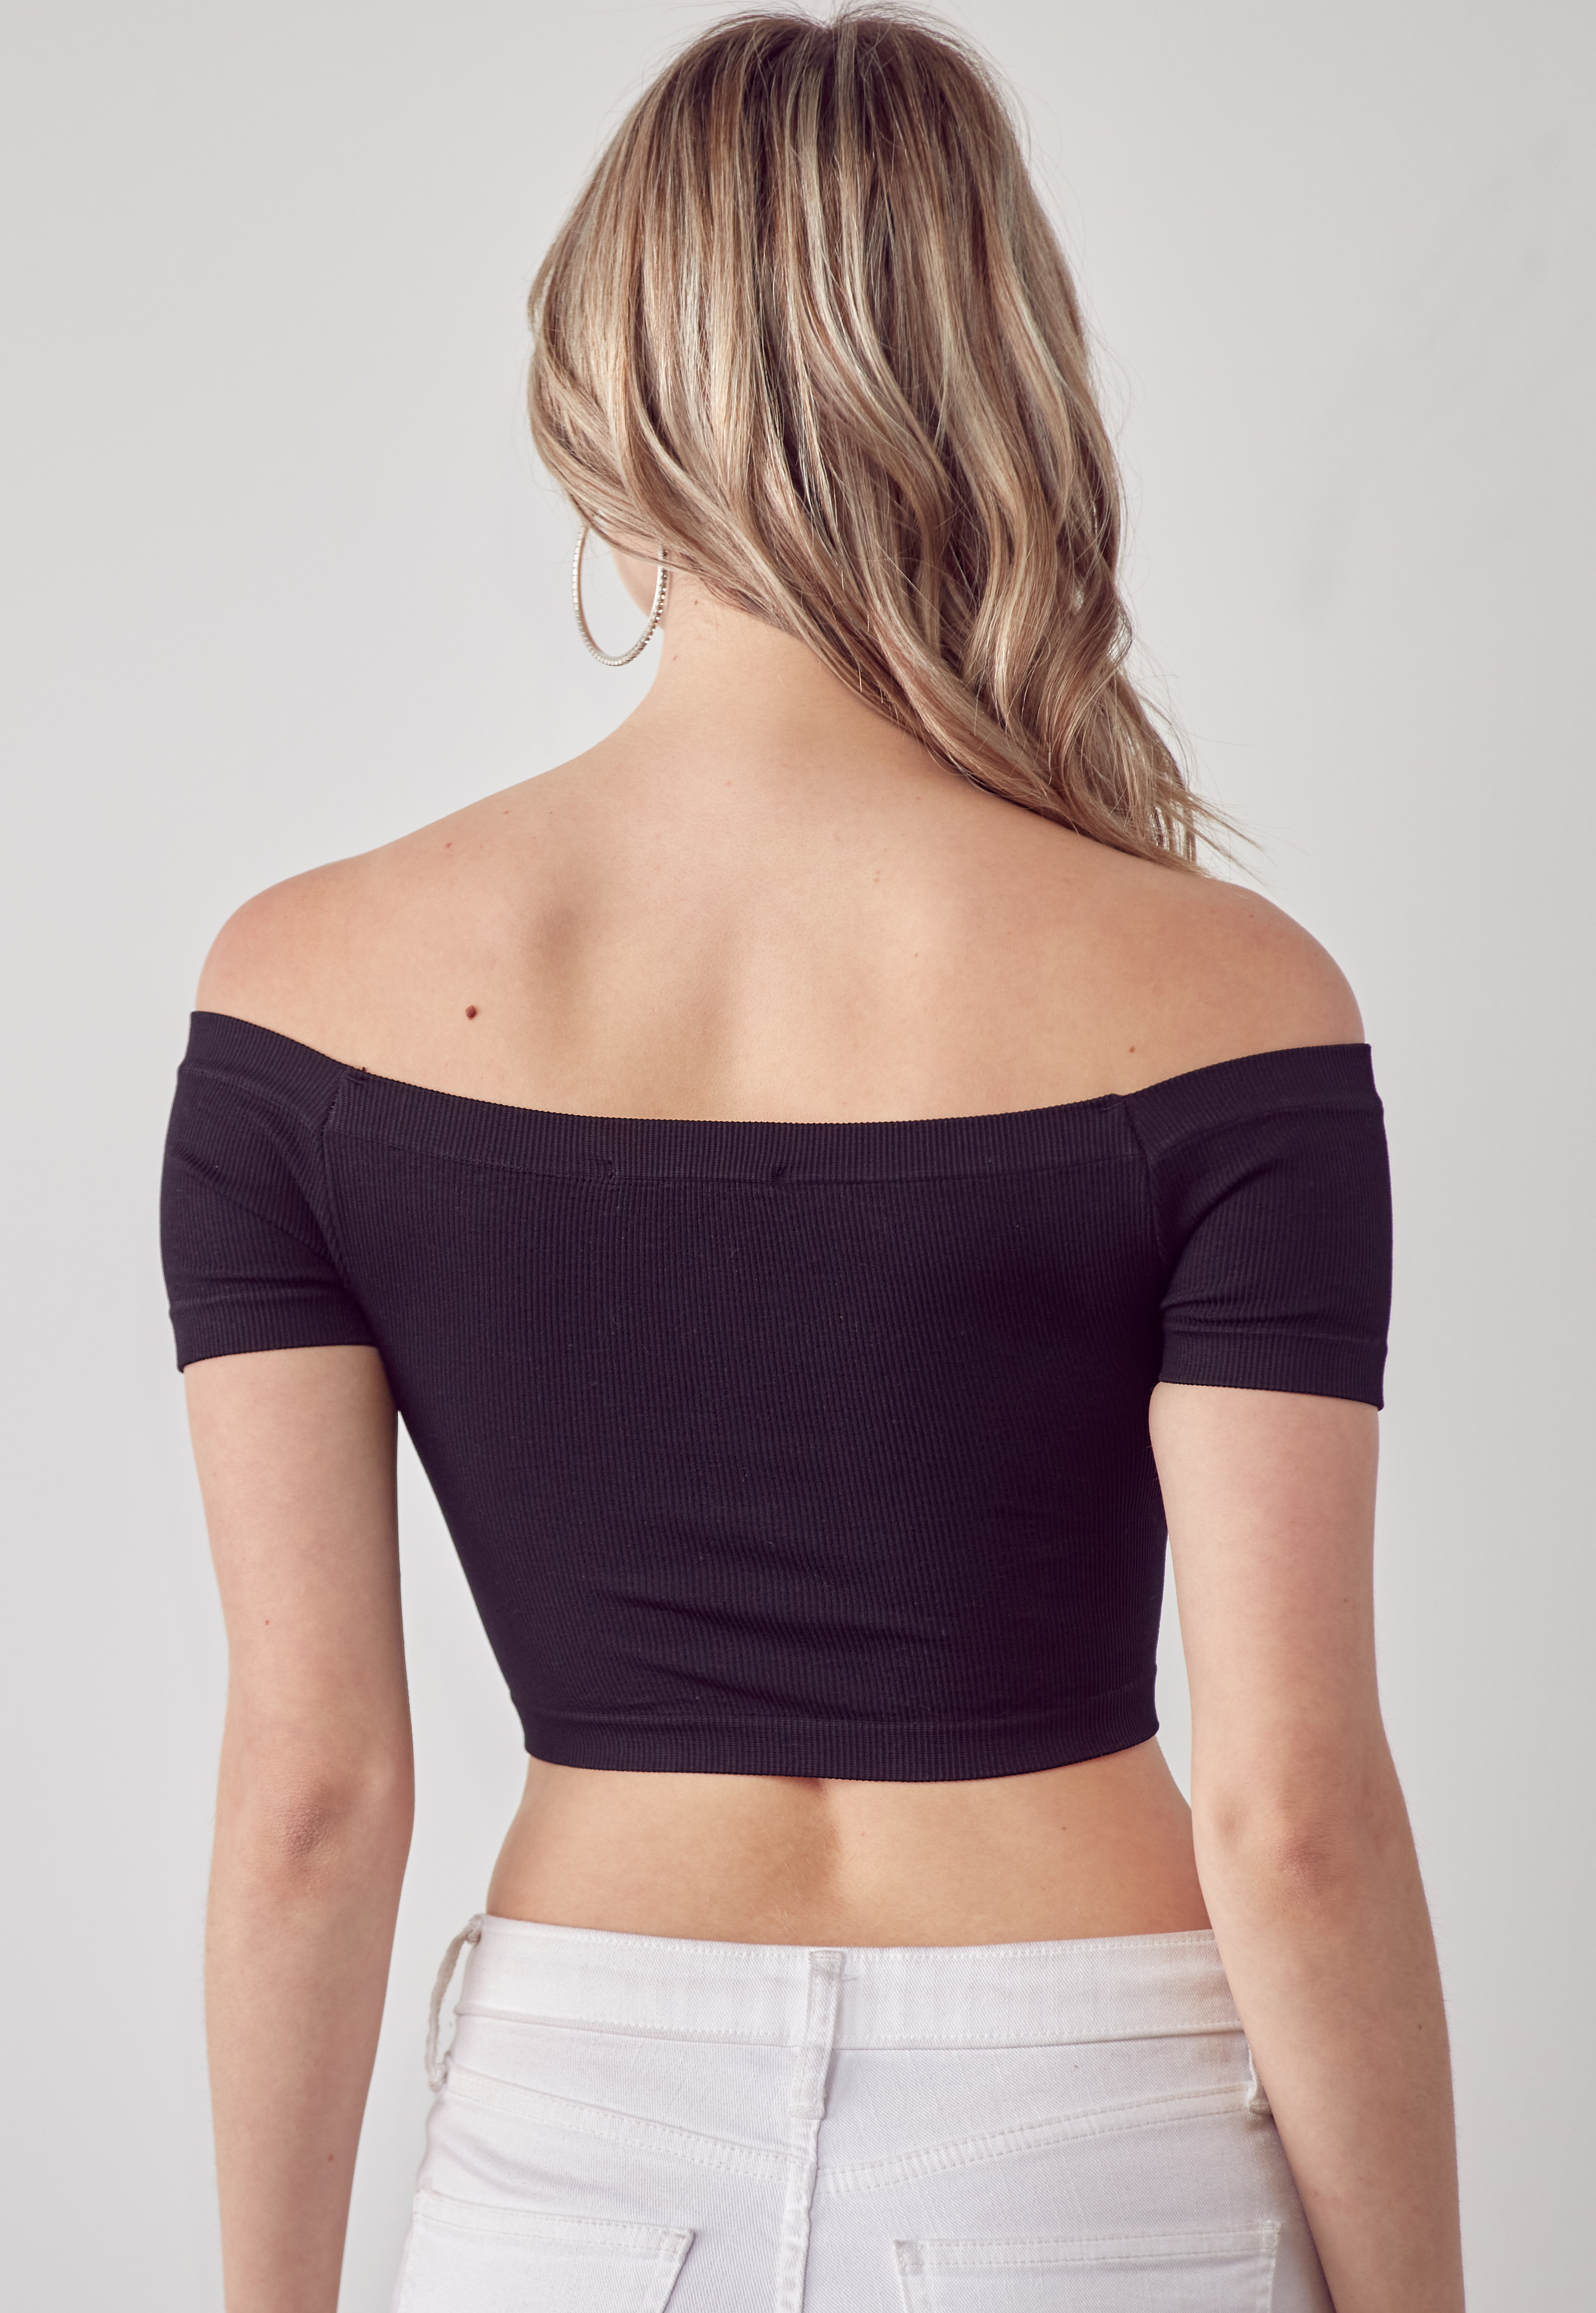 Off-Shoulder Rib Knit Crop Top